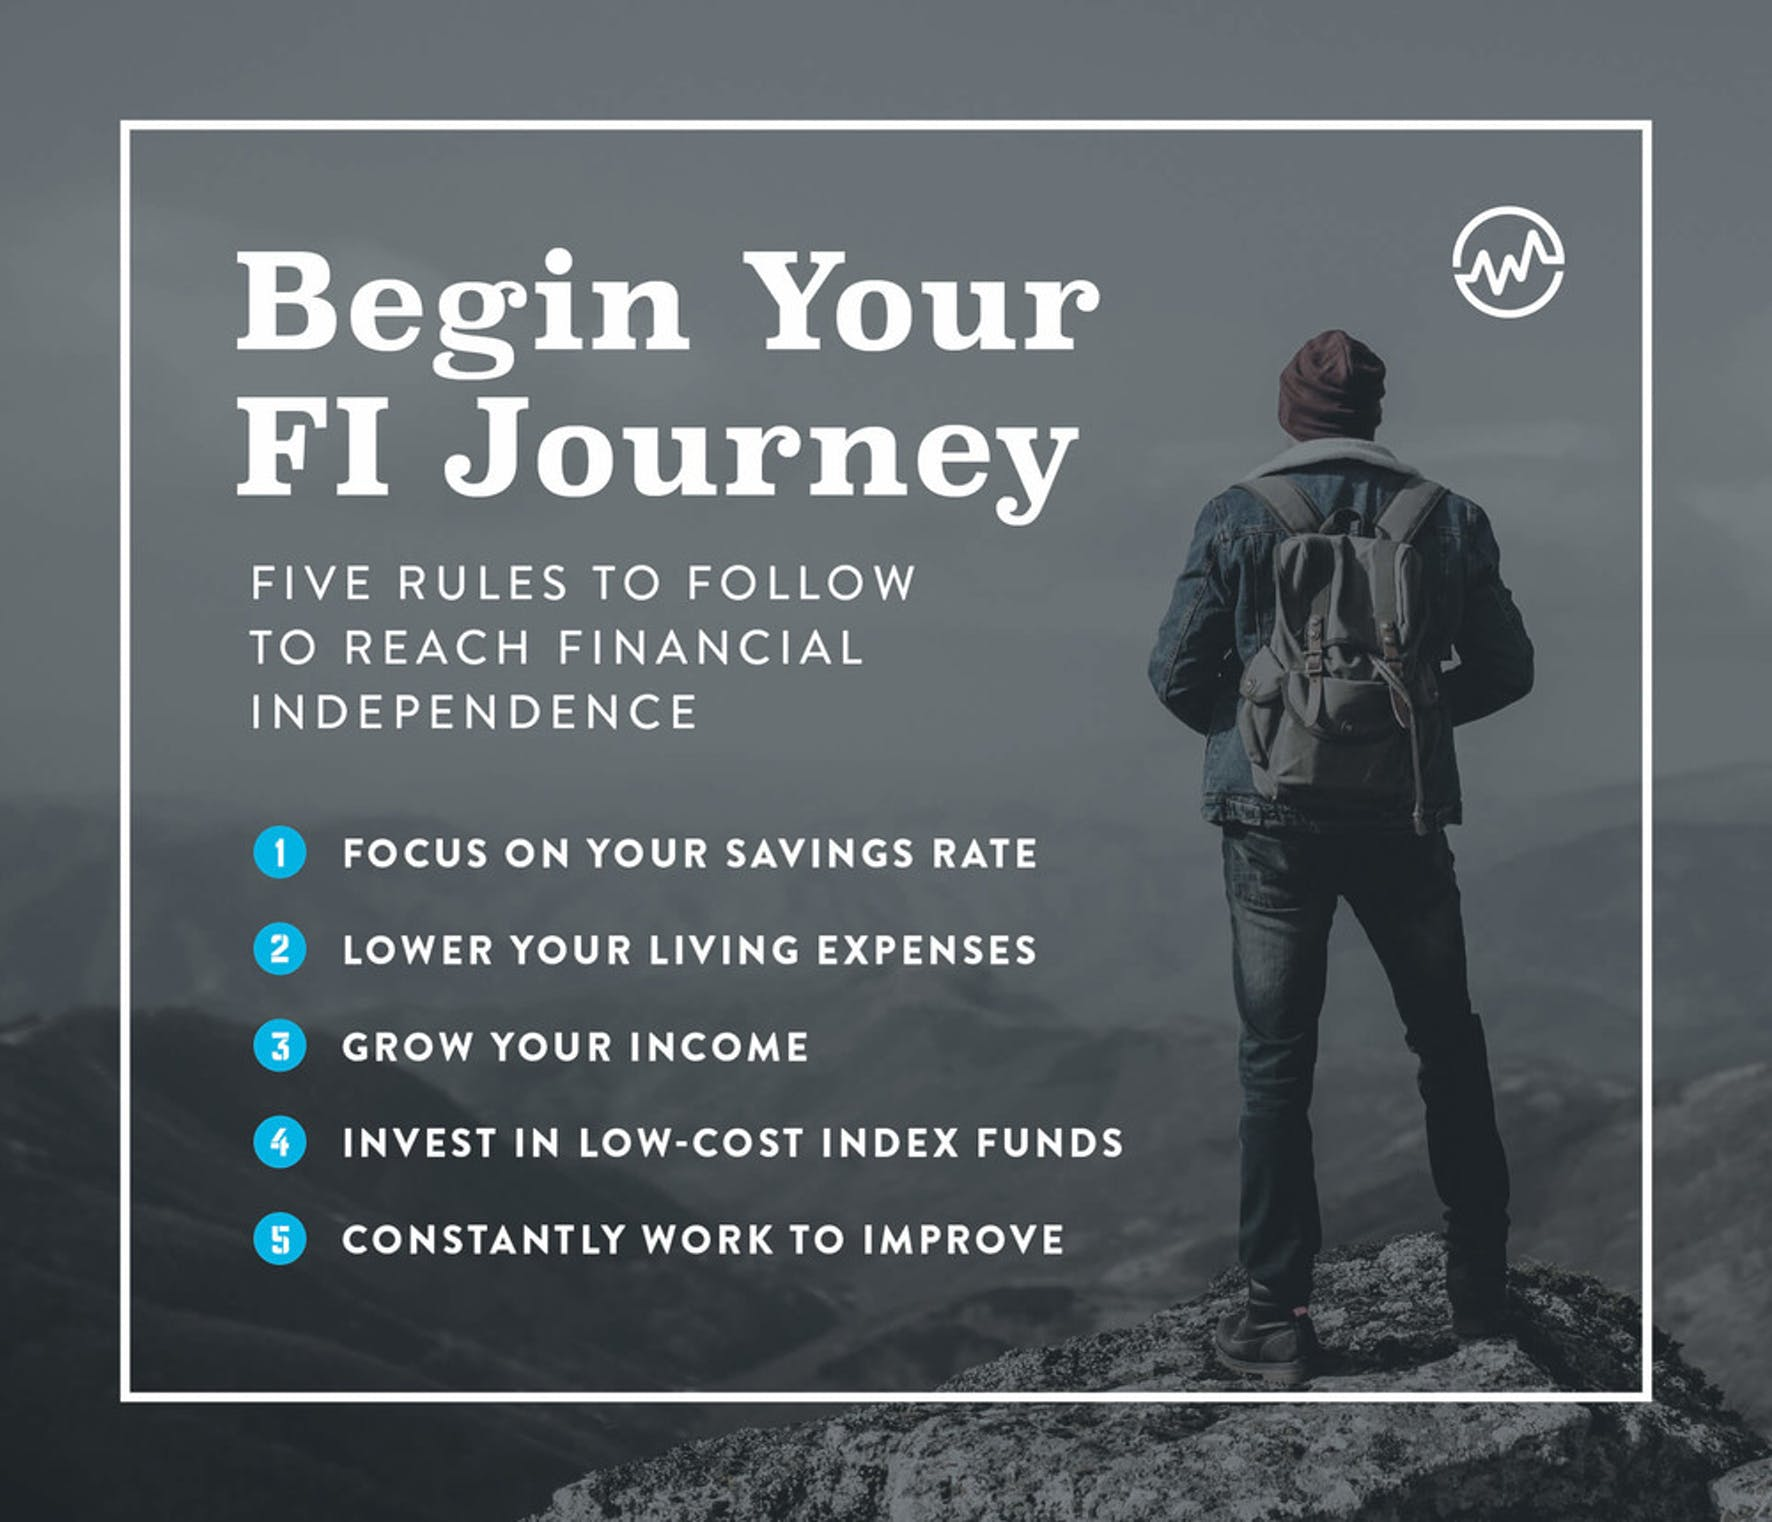 Begin your financial independence journey